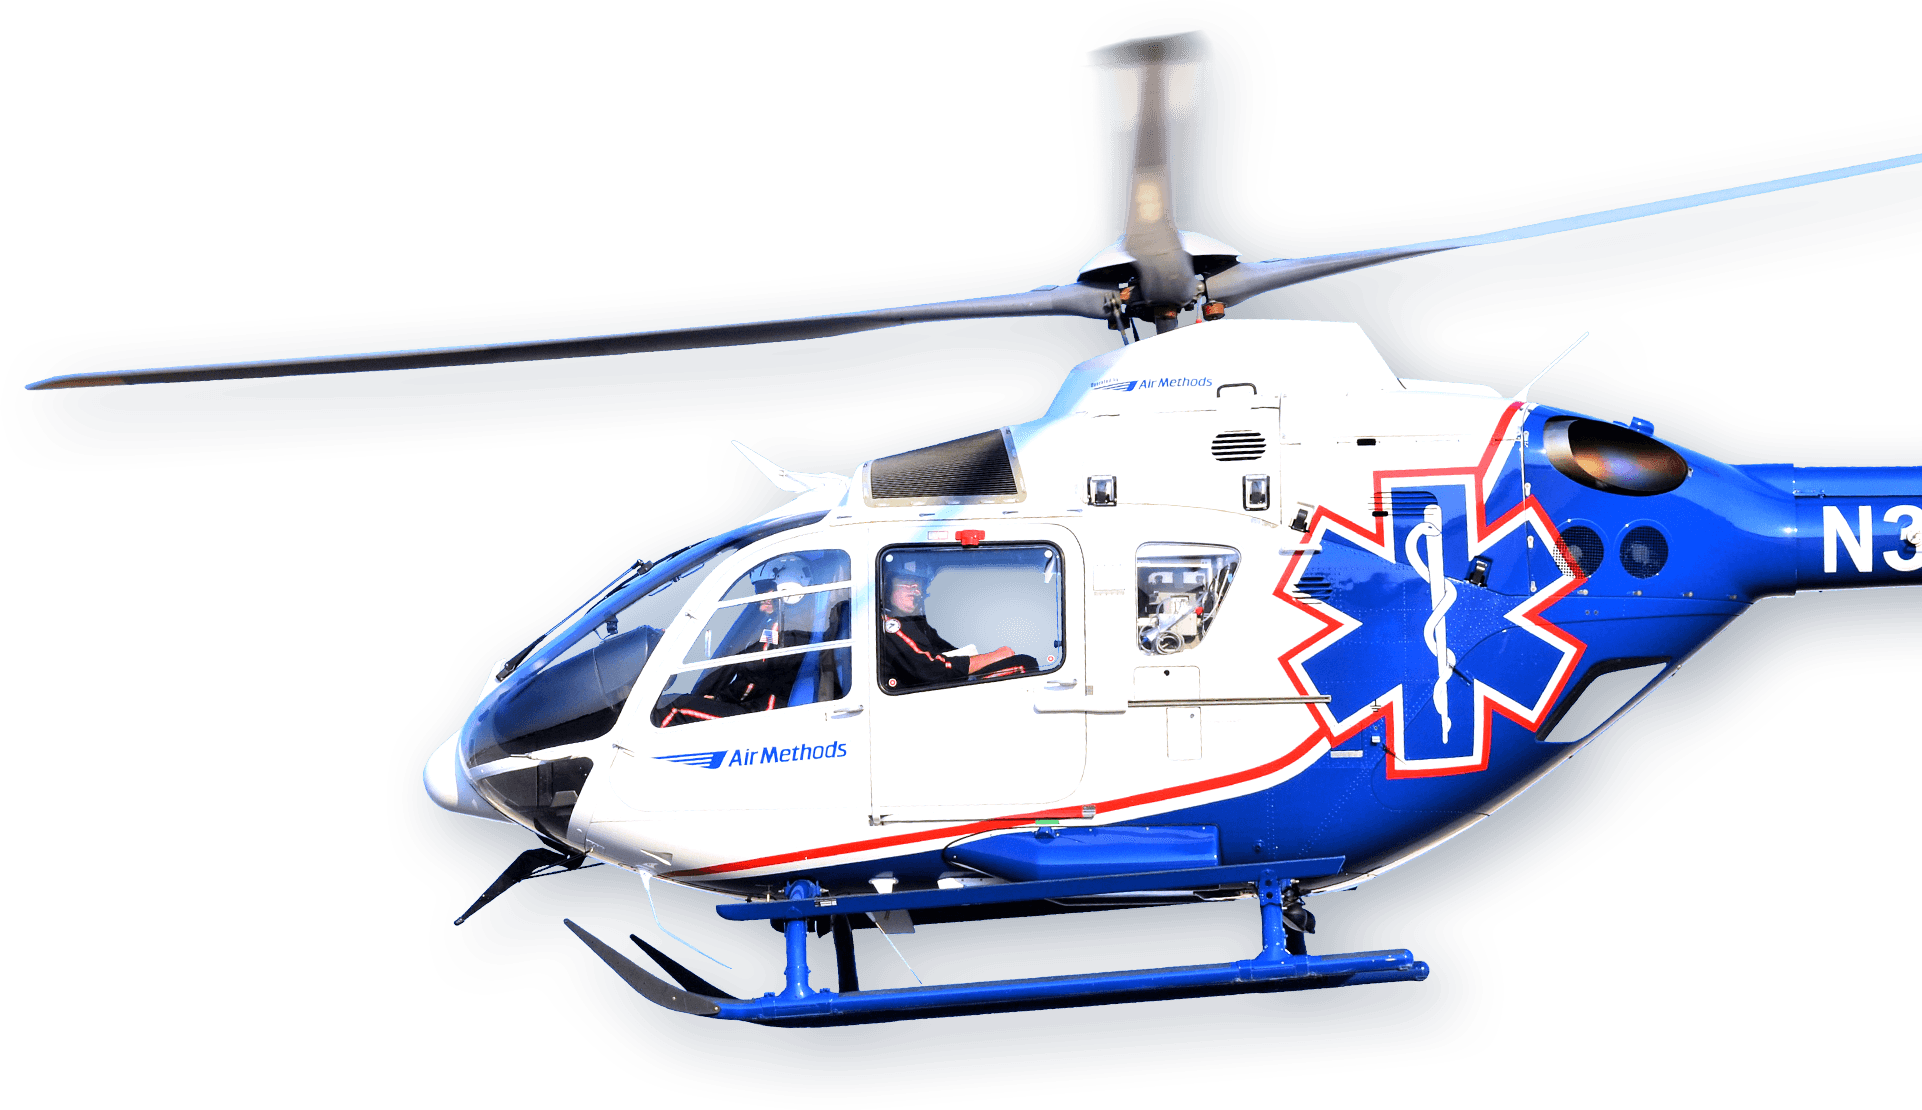 Air Methods helicopter.